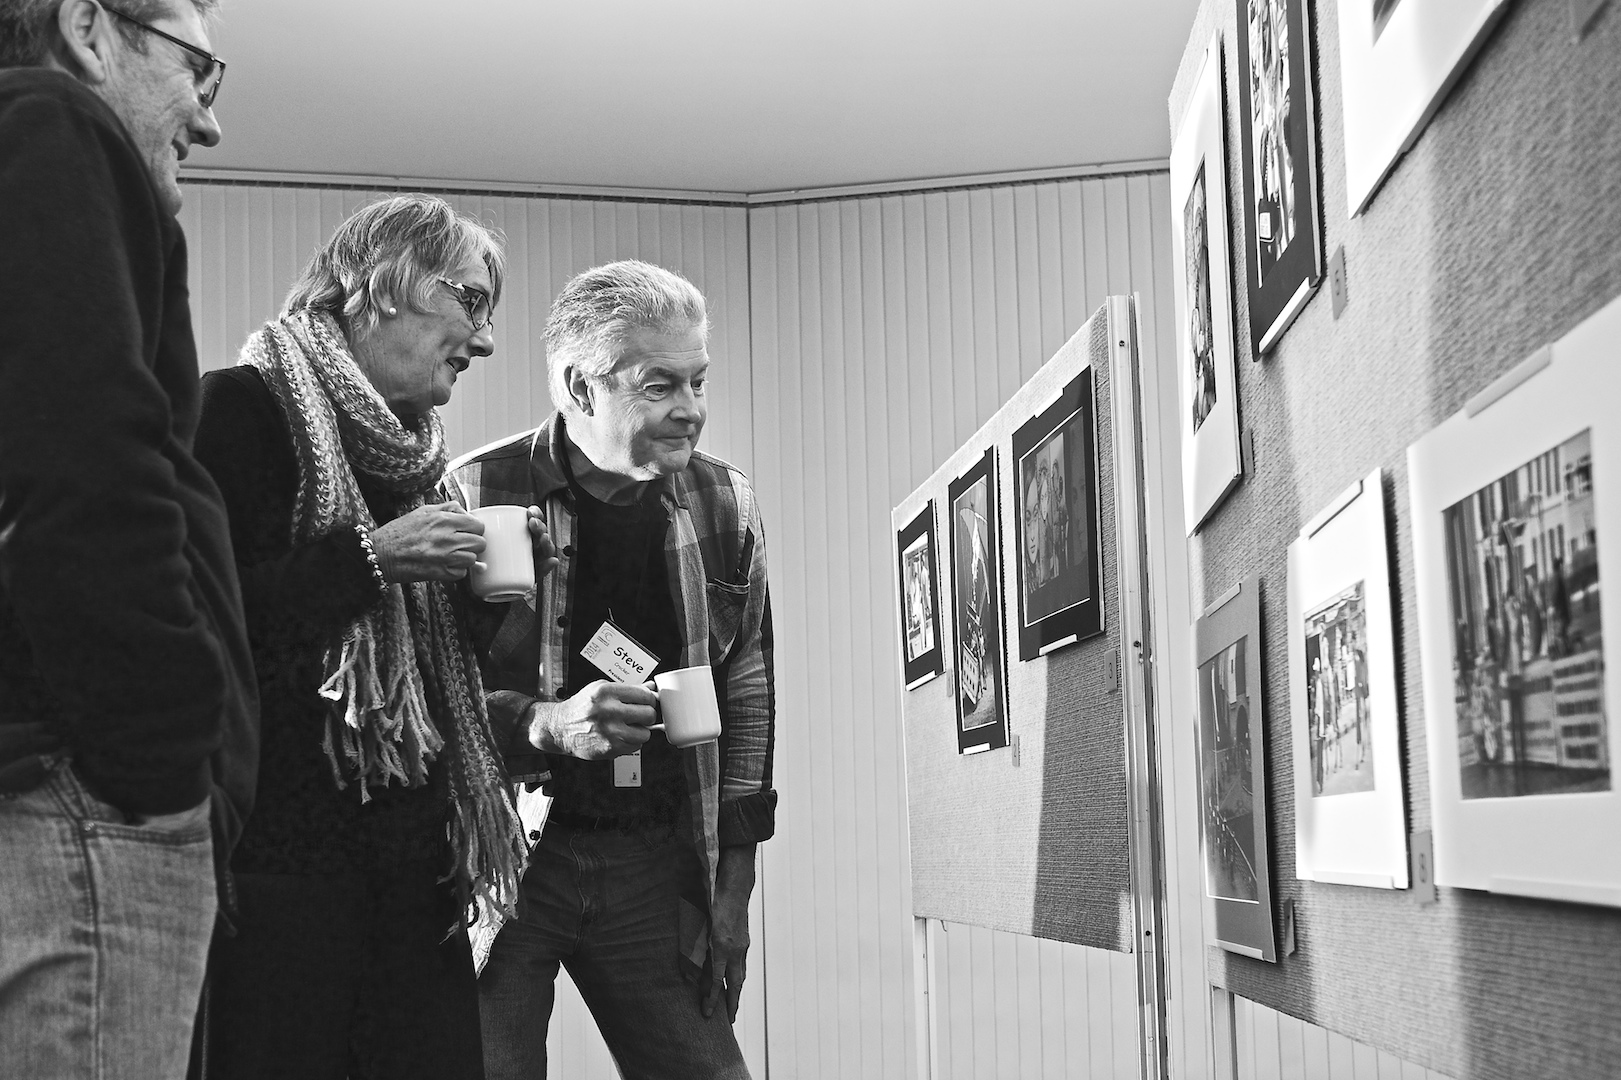 The serious business of judging the prints